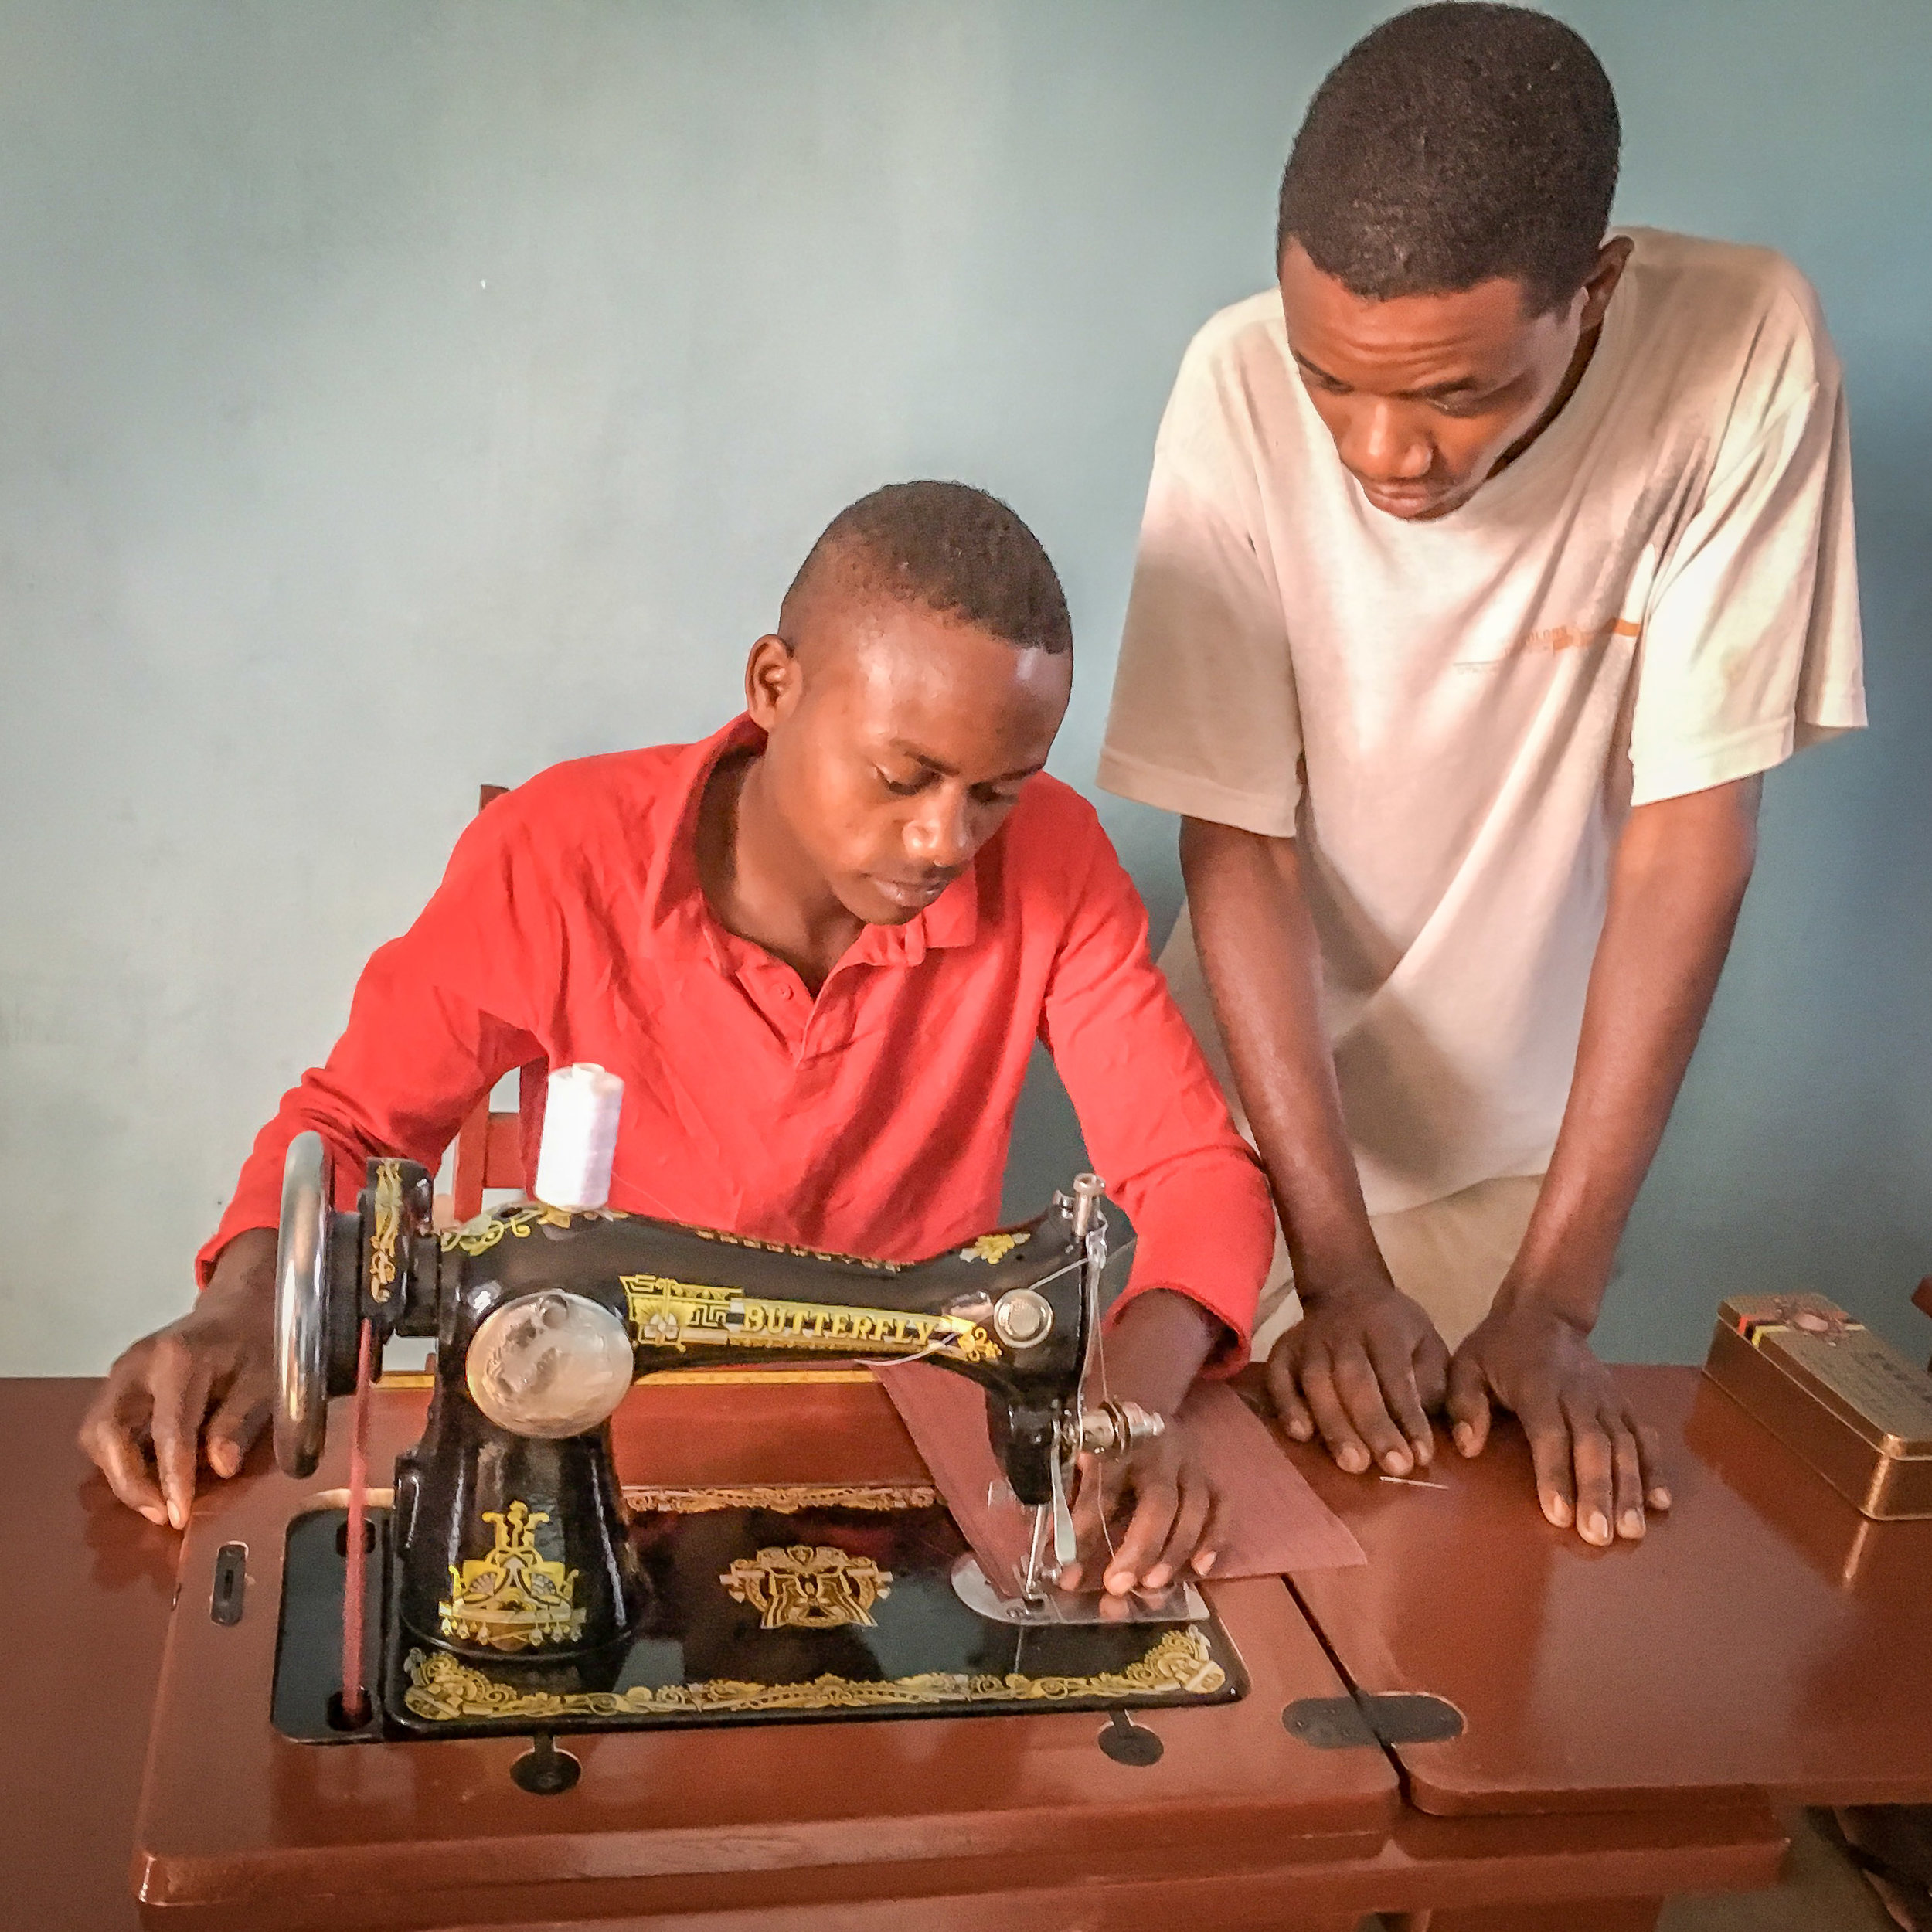 One of the young men practicing sewing while another observes.